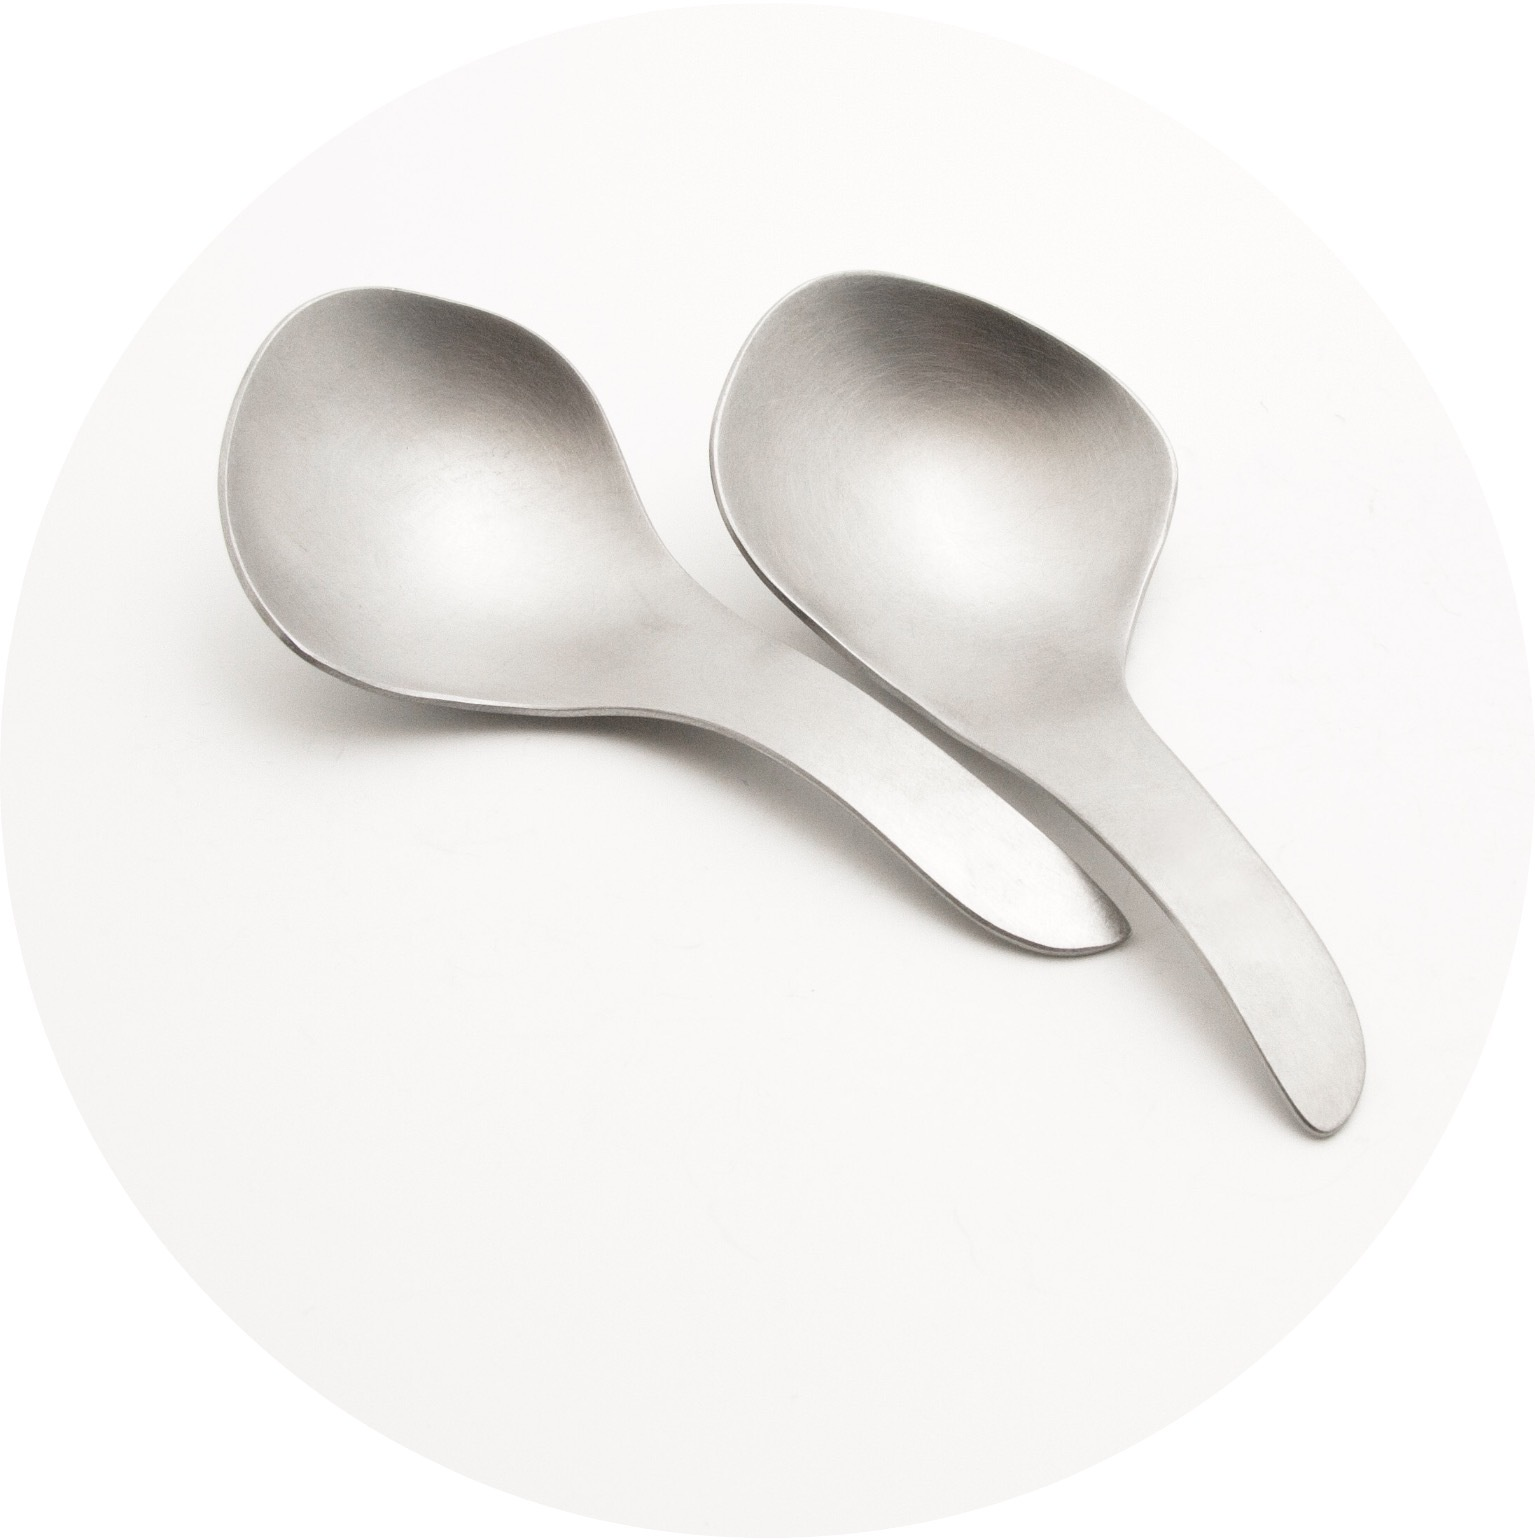 Alison Jackson– Little spoons. Stainless steel (set of 2)